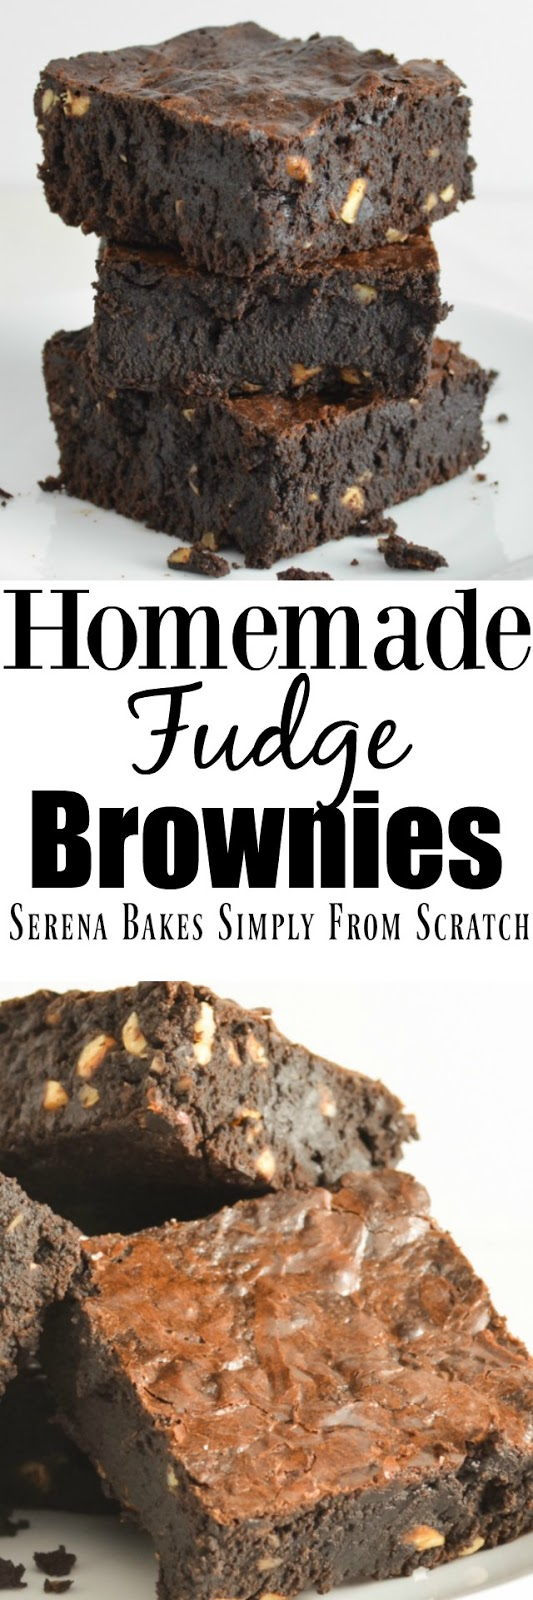 Homemade Fudge Brownie recipe from Scratch. The ultimate dessert chocolate fix from Serena Bakes Simply From Scratch.